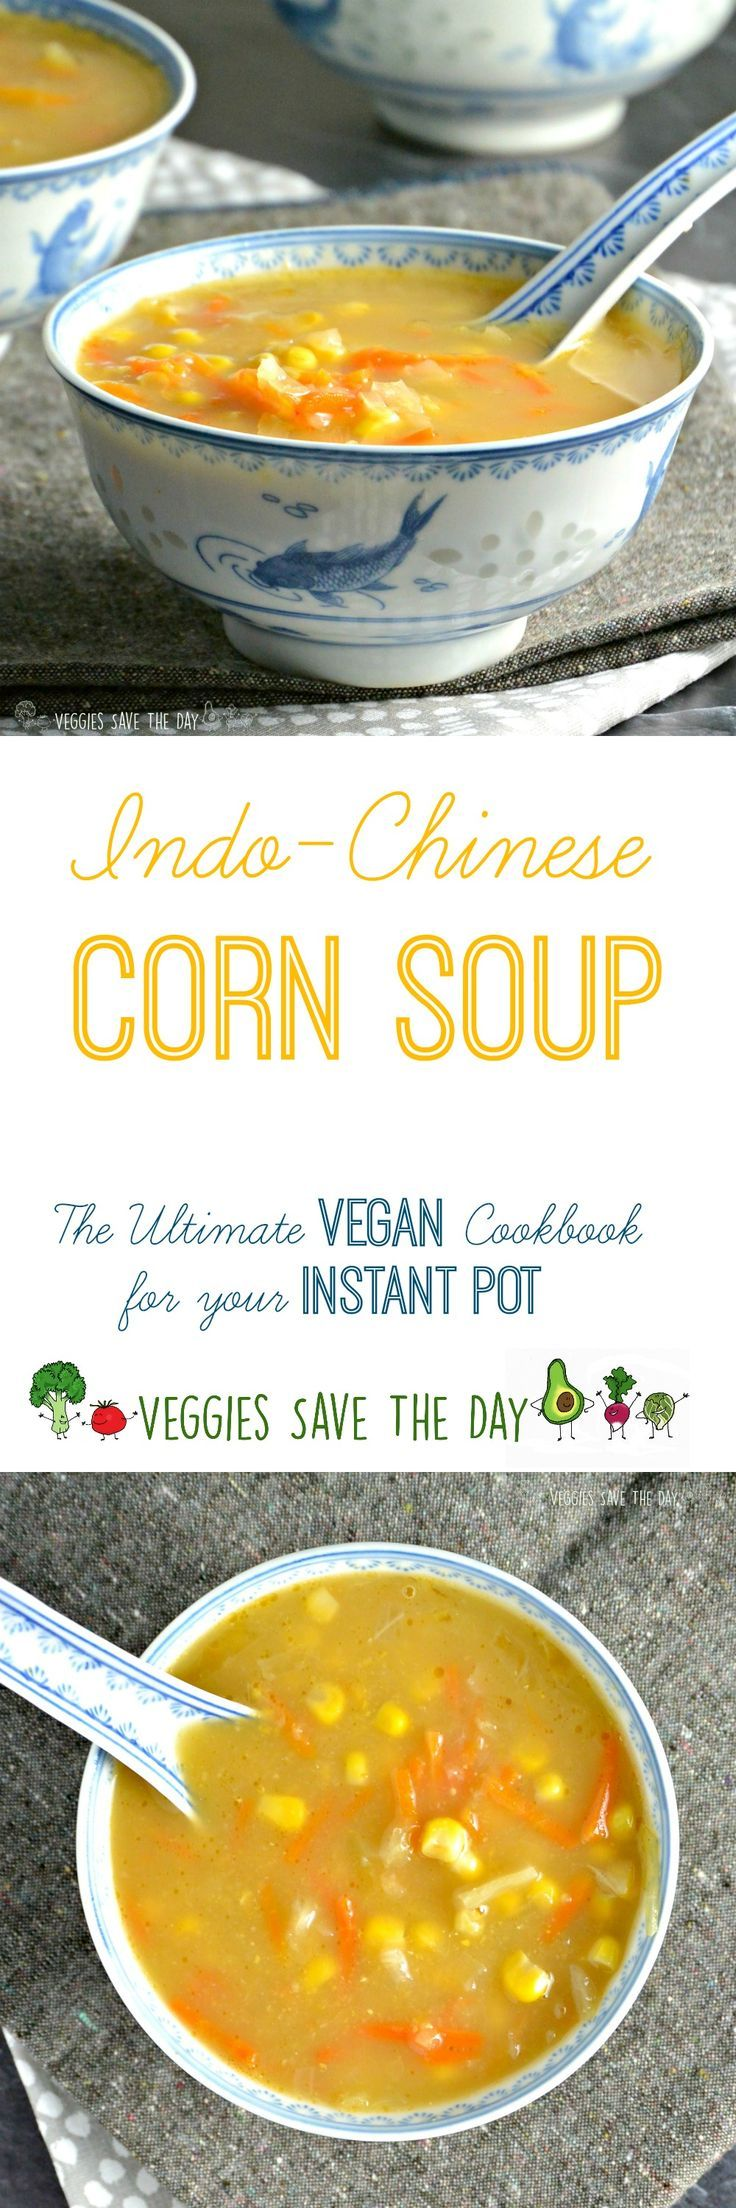 Indo Chinese Corn Soup from The Ultimate Vegan Cookbook for Your Instant Pot by Kathy Hester | https://lomejordelaweb.es/